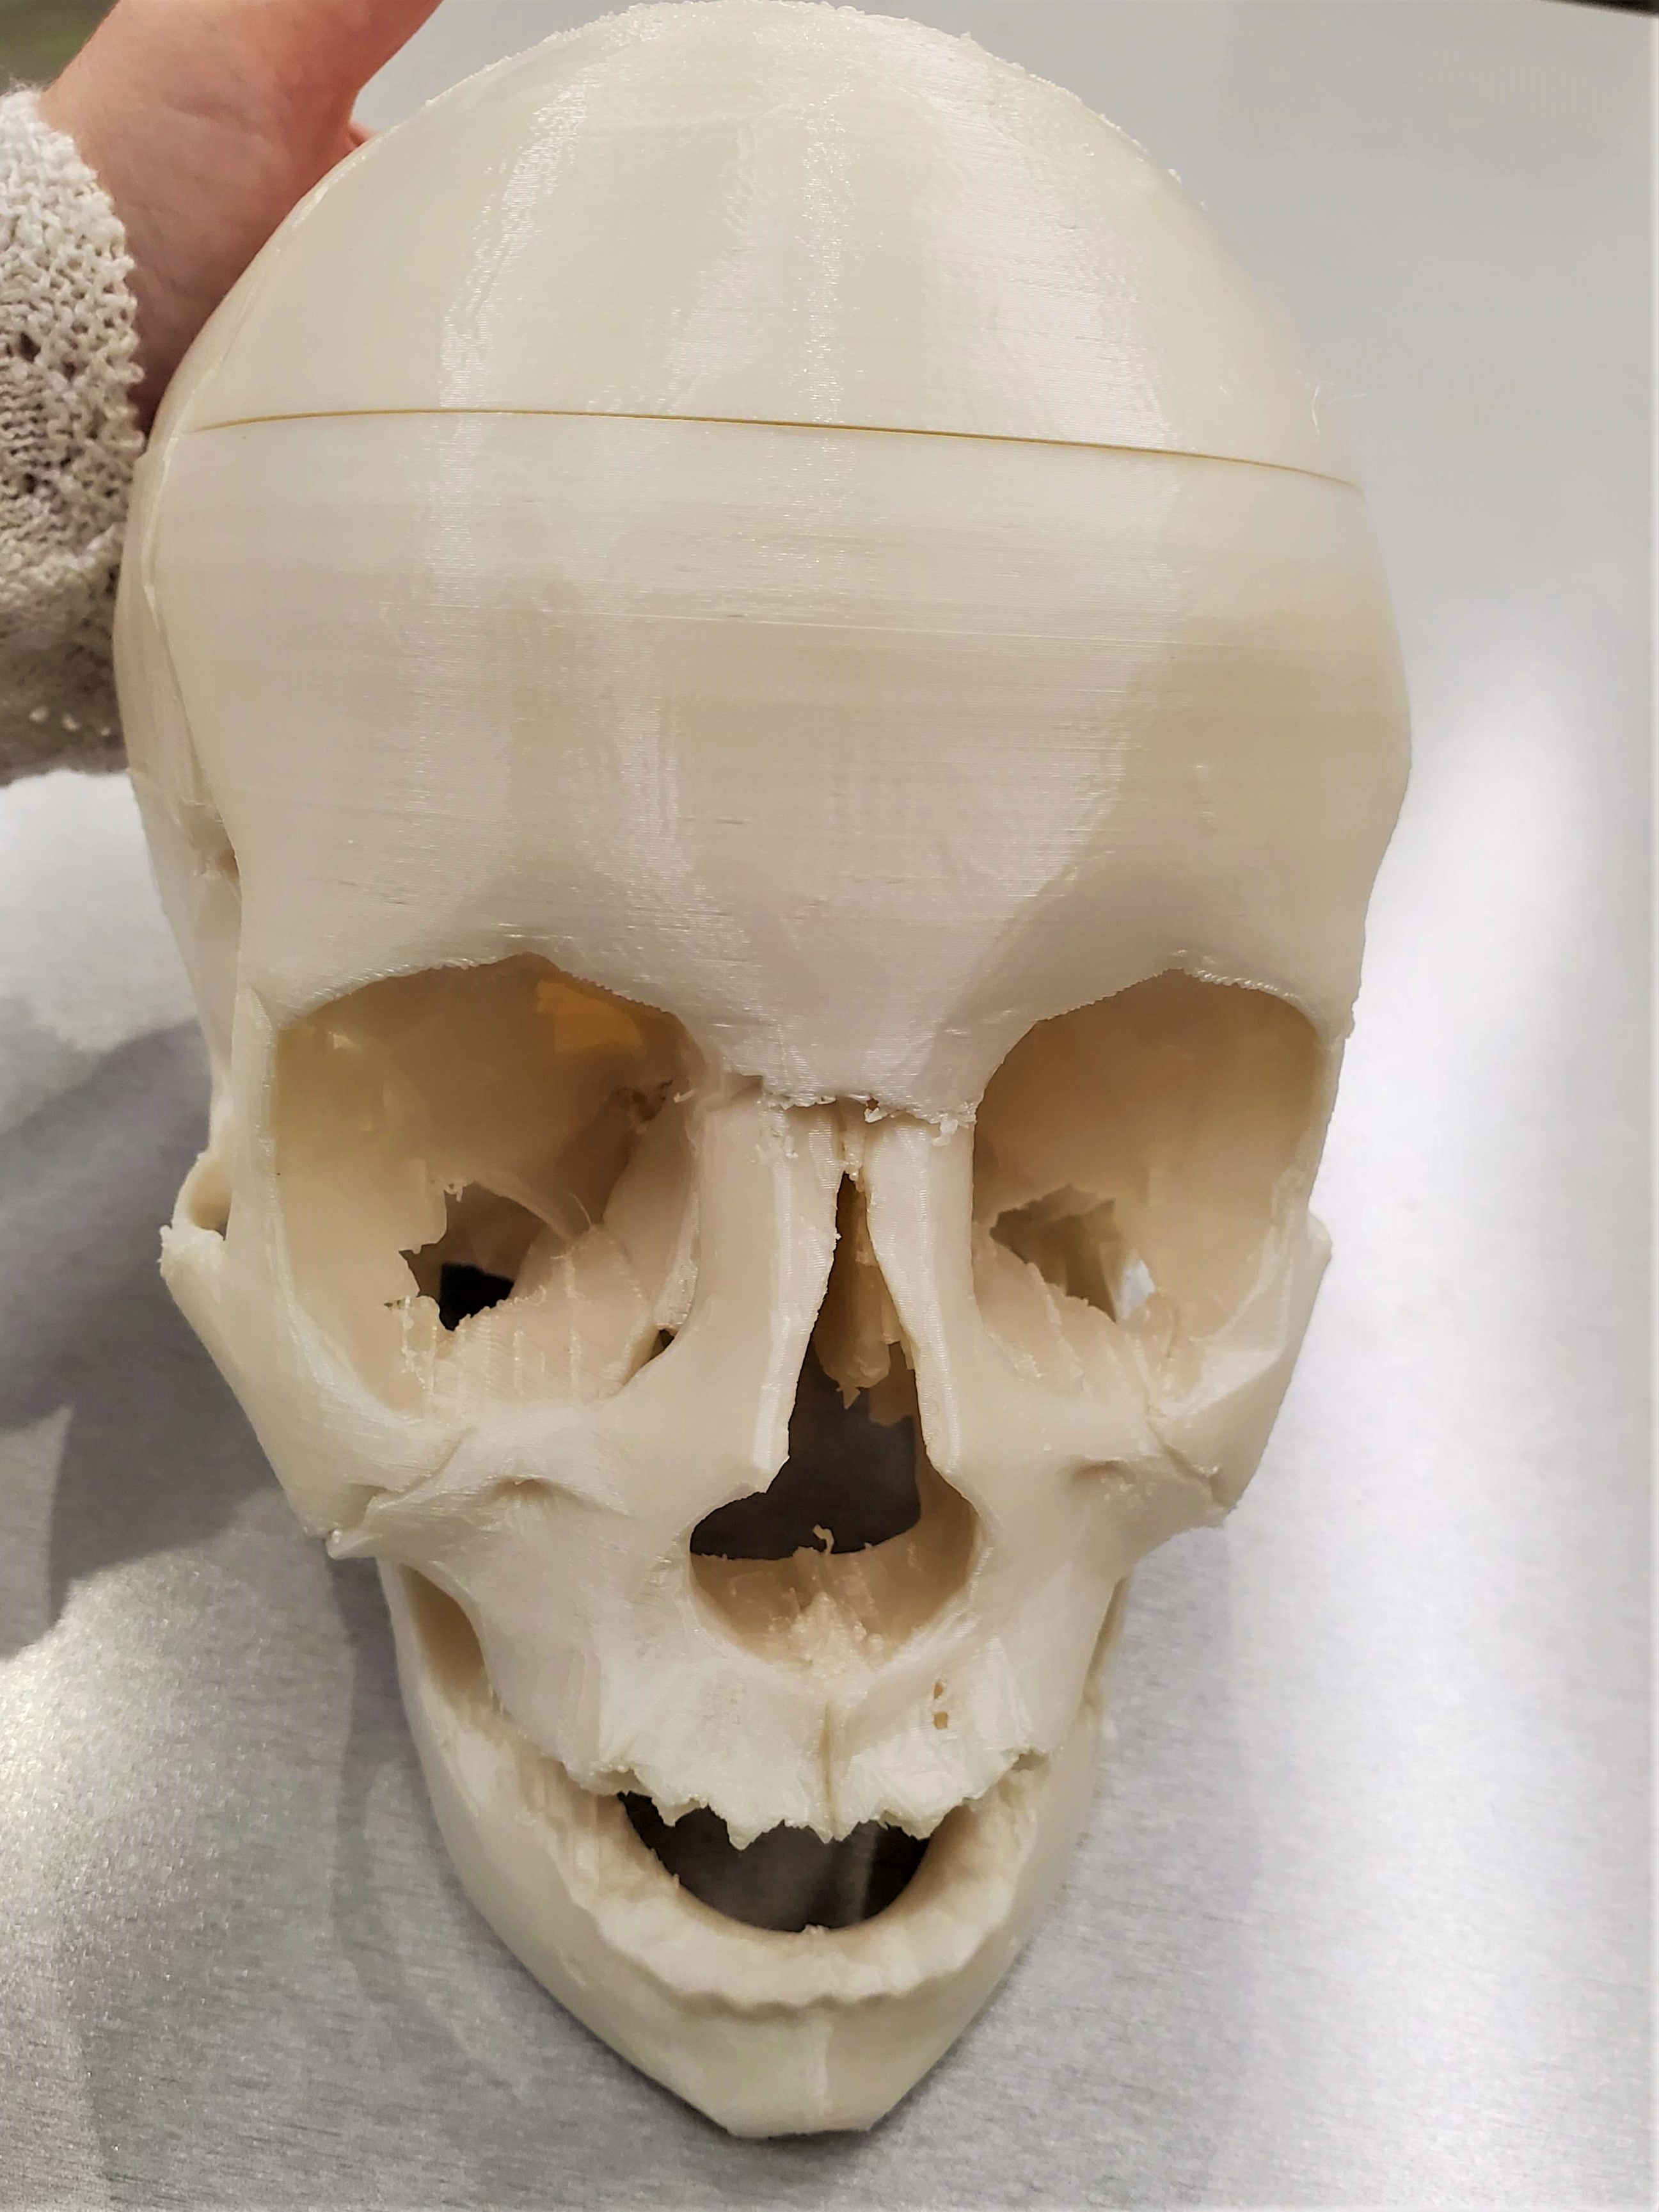 3D printed skull with removable top